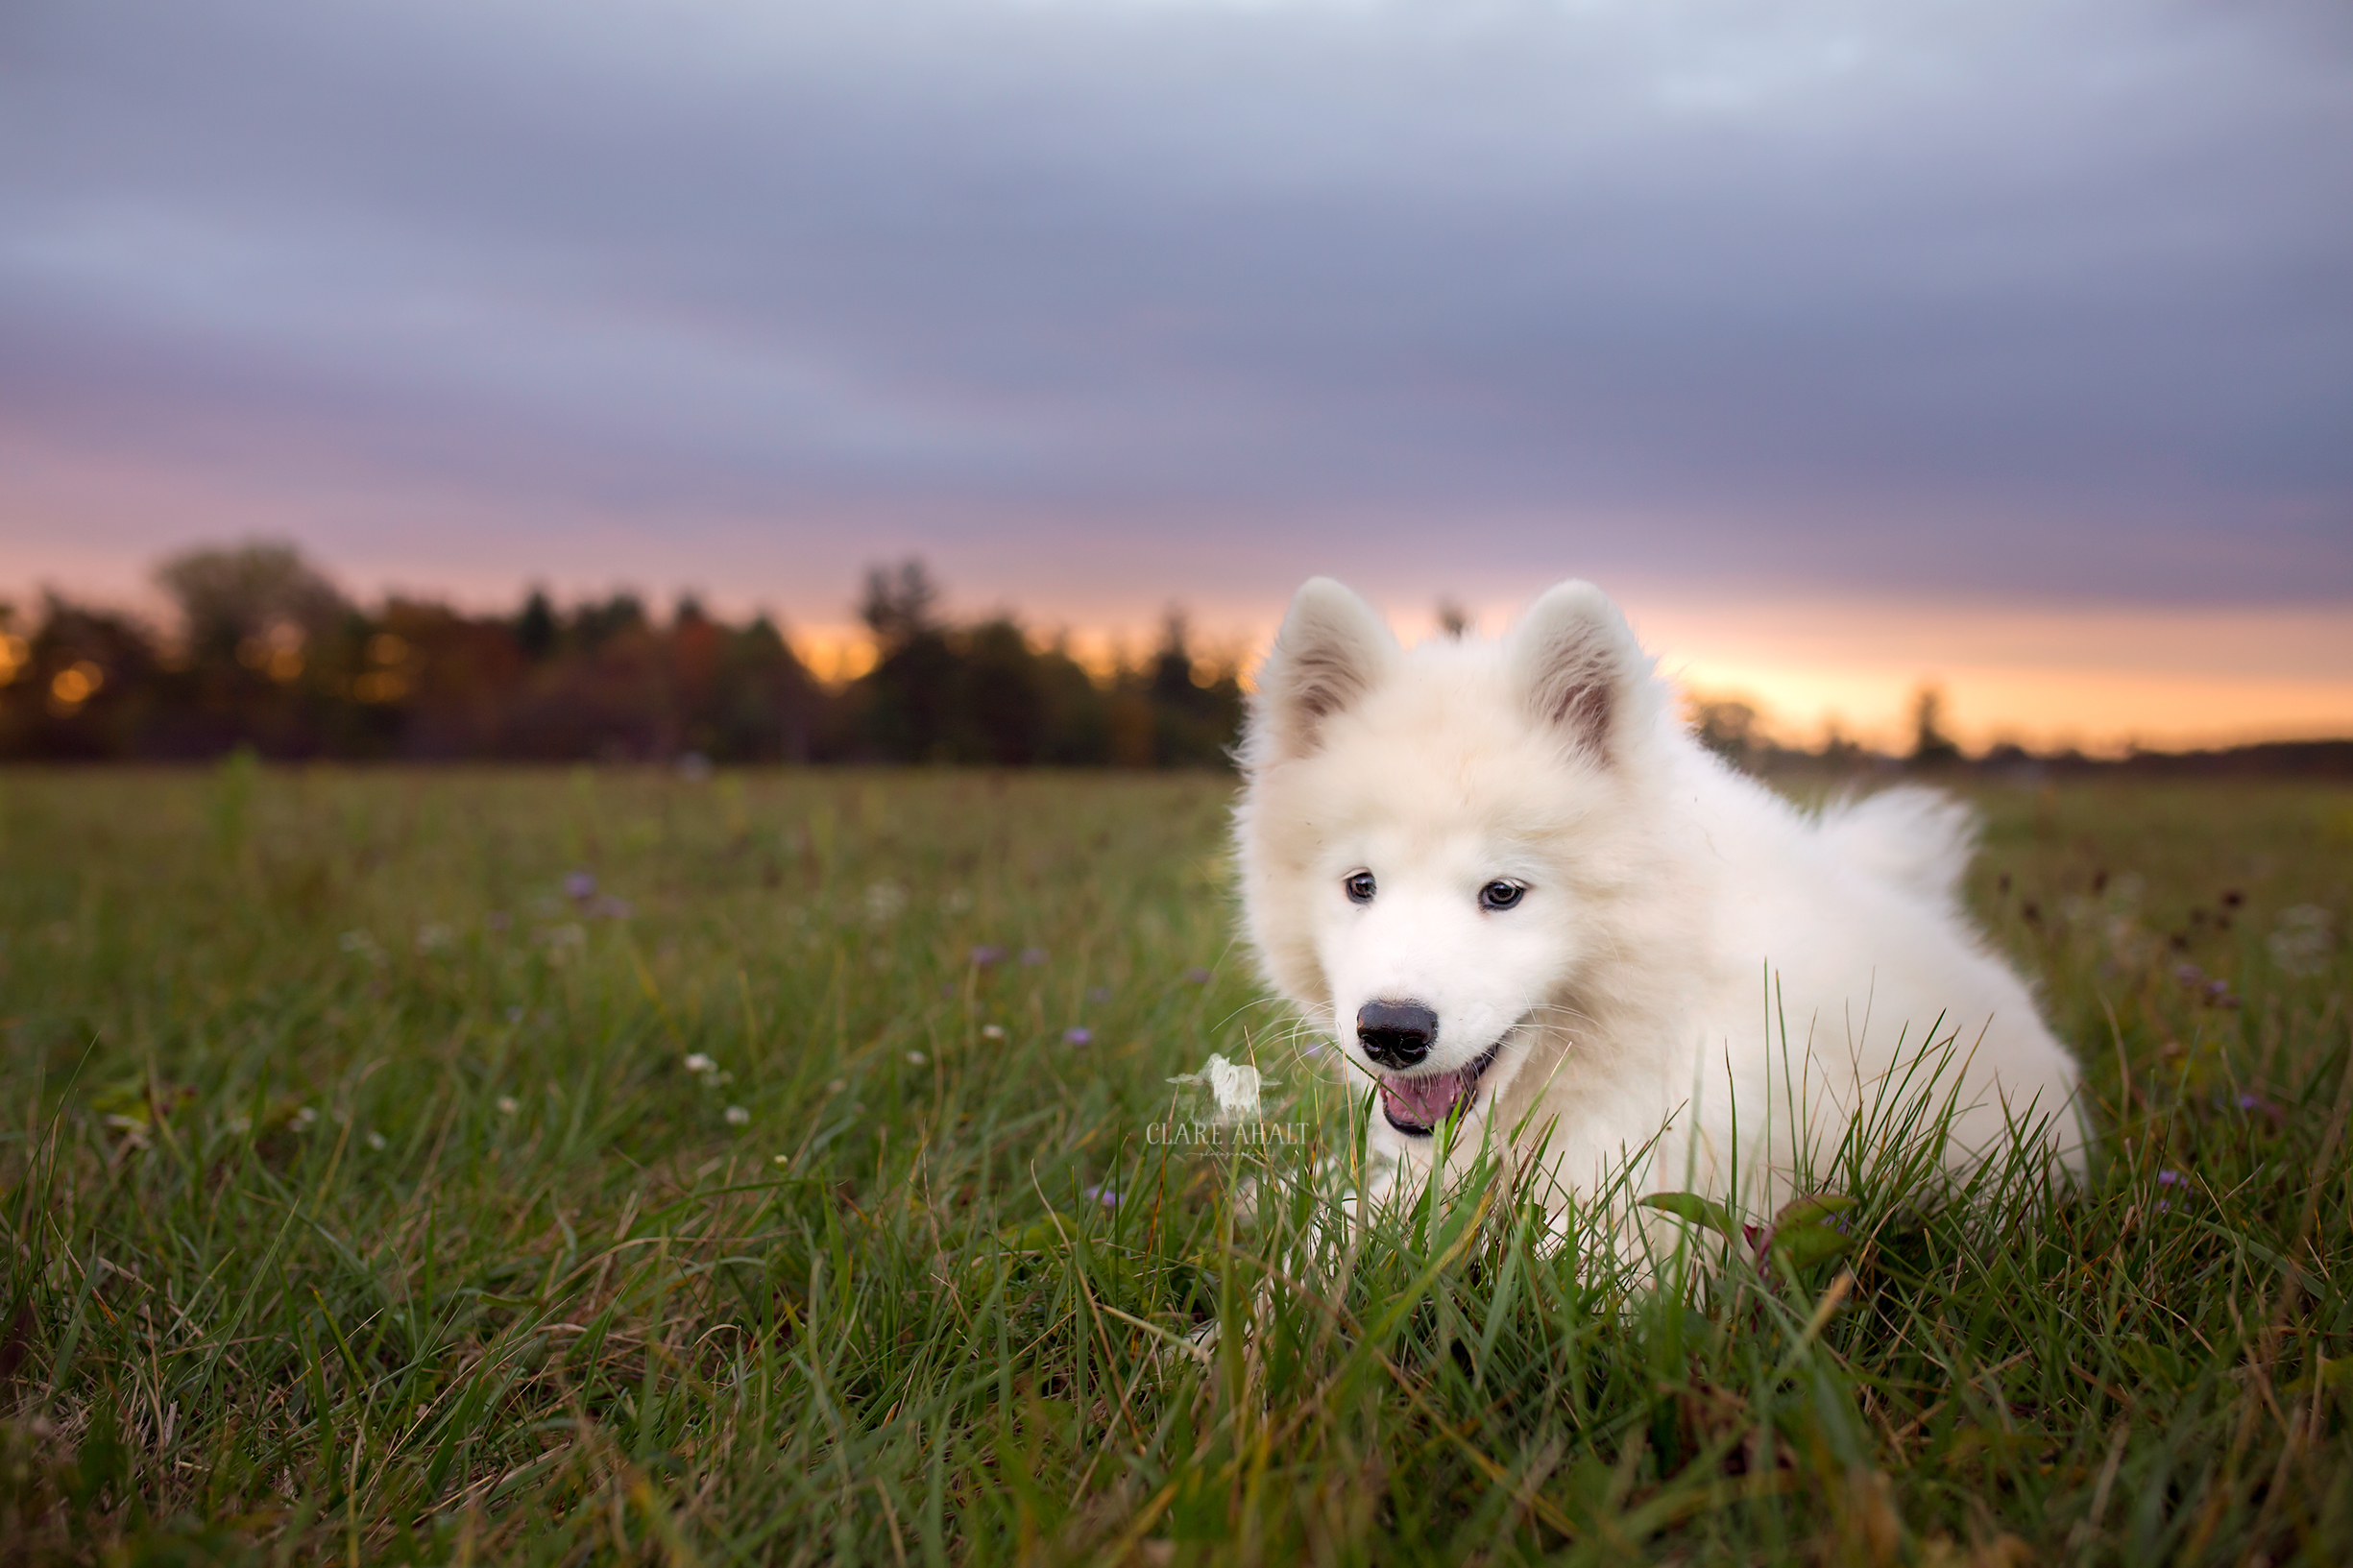 Pet portrait of a samoyed puppy photographed in Potomac MD by Clare Ahalt Photography, a fine art portrait photography located in Frederick MD